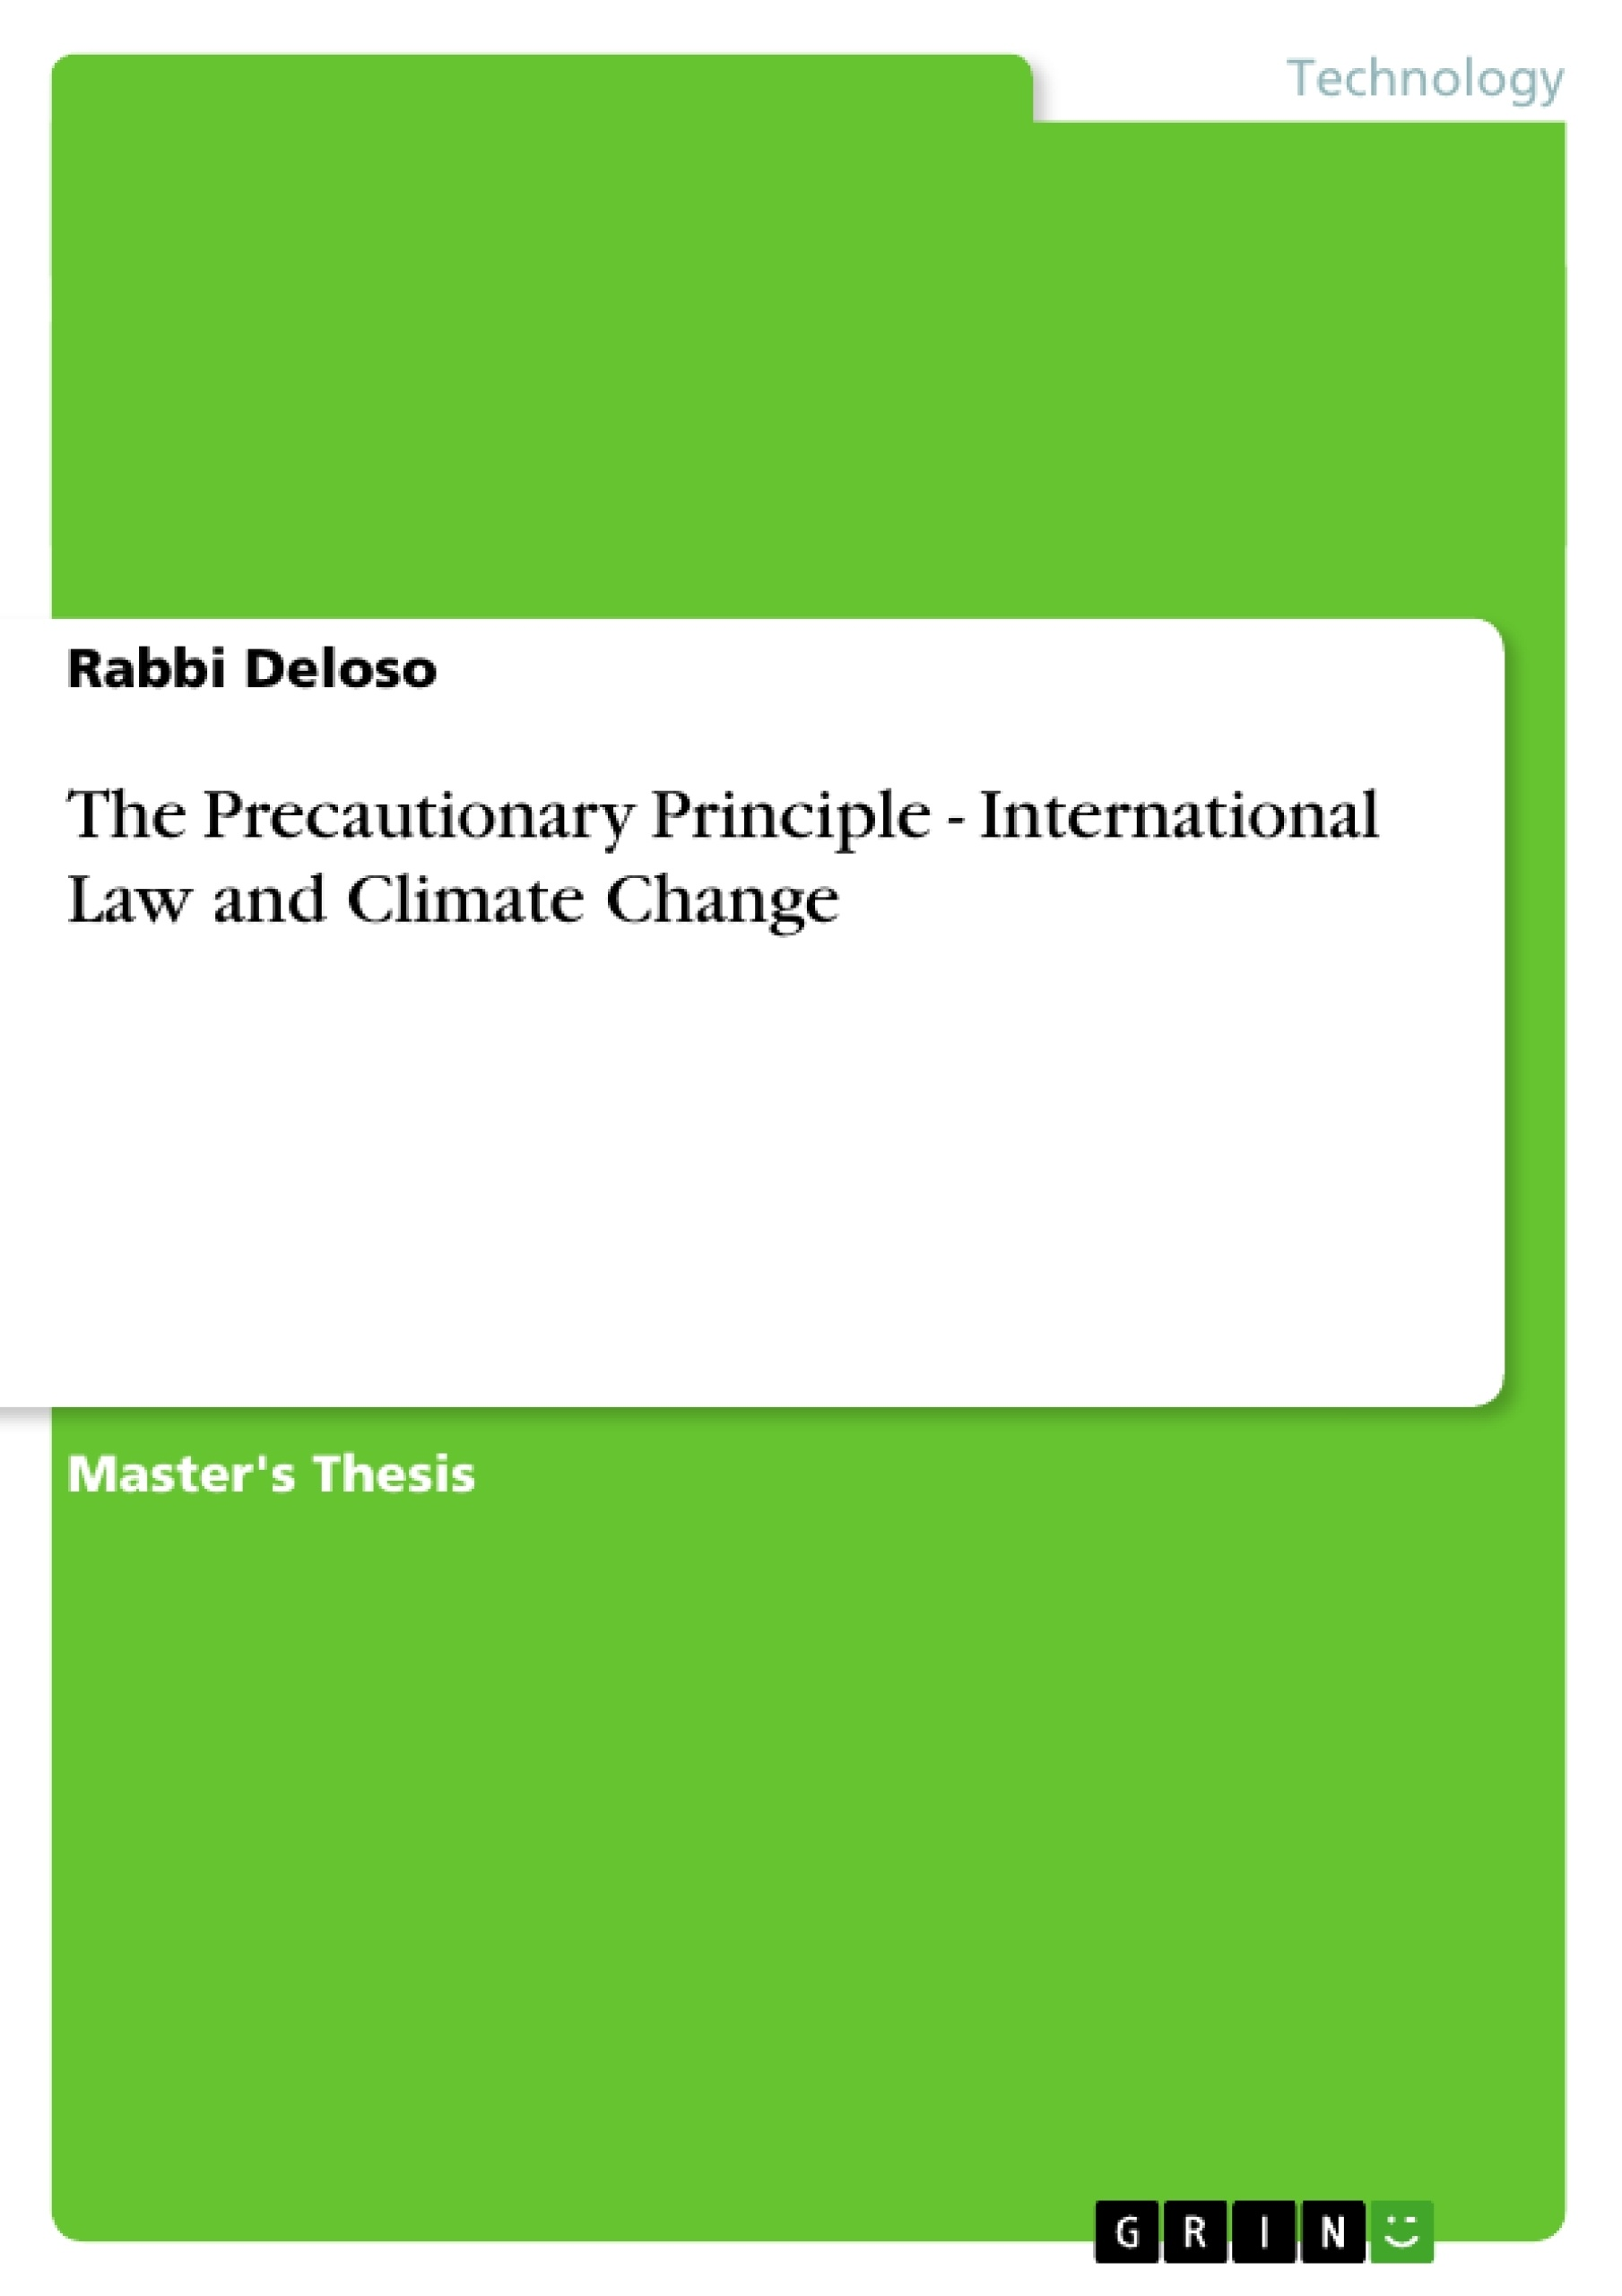 Title: The Precautionary Principle - International Law and Climate Change